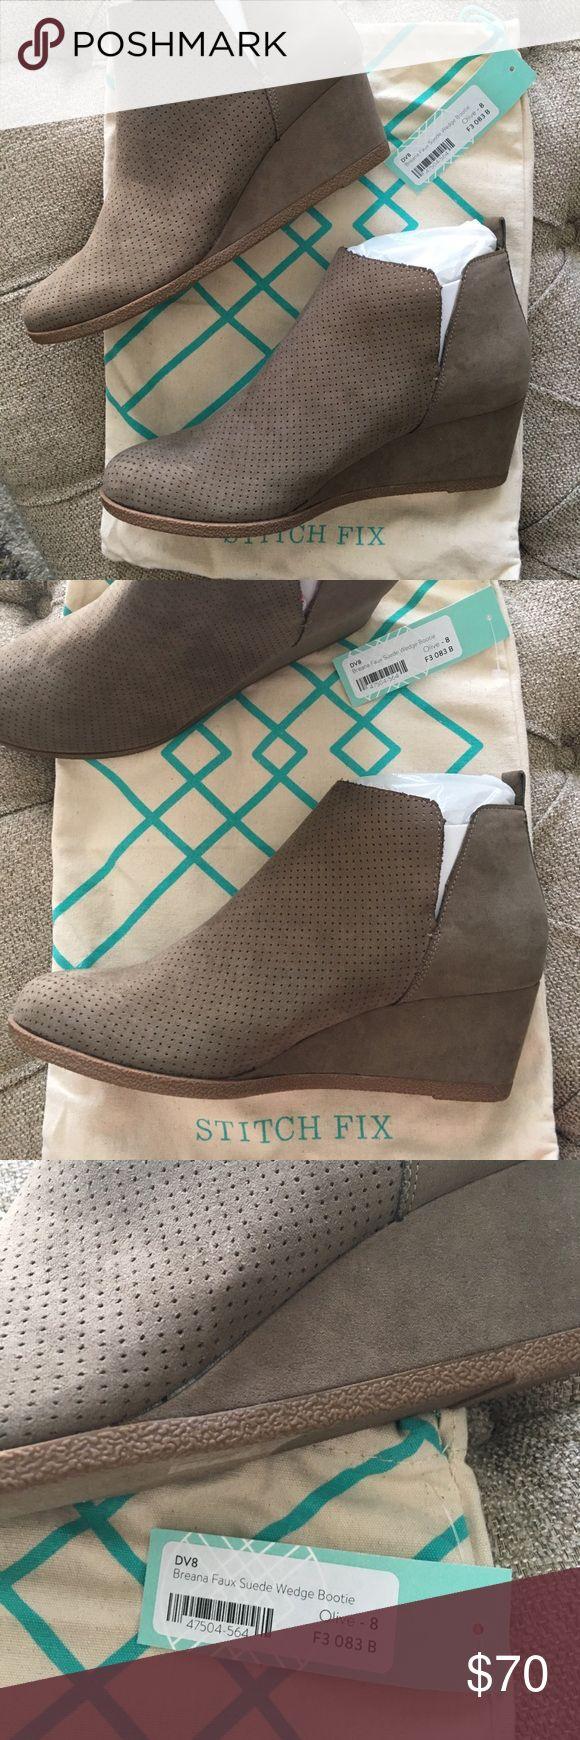 Stitch Fix - DV8 Breana Faux Wedge Bootie Size 8 These are NWT wedge booties from StitchFix. Perfect for Fall!!! DV8 Breana Faux Suede Wedge Booties size 8 color taupe/olive. Will send with duster bag DV8 Shoes Ankle Boots & Booties